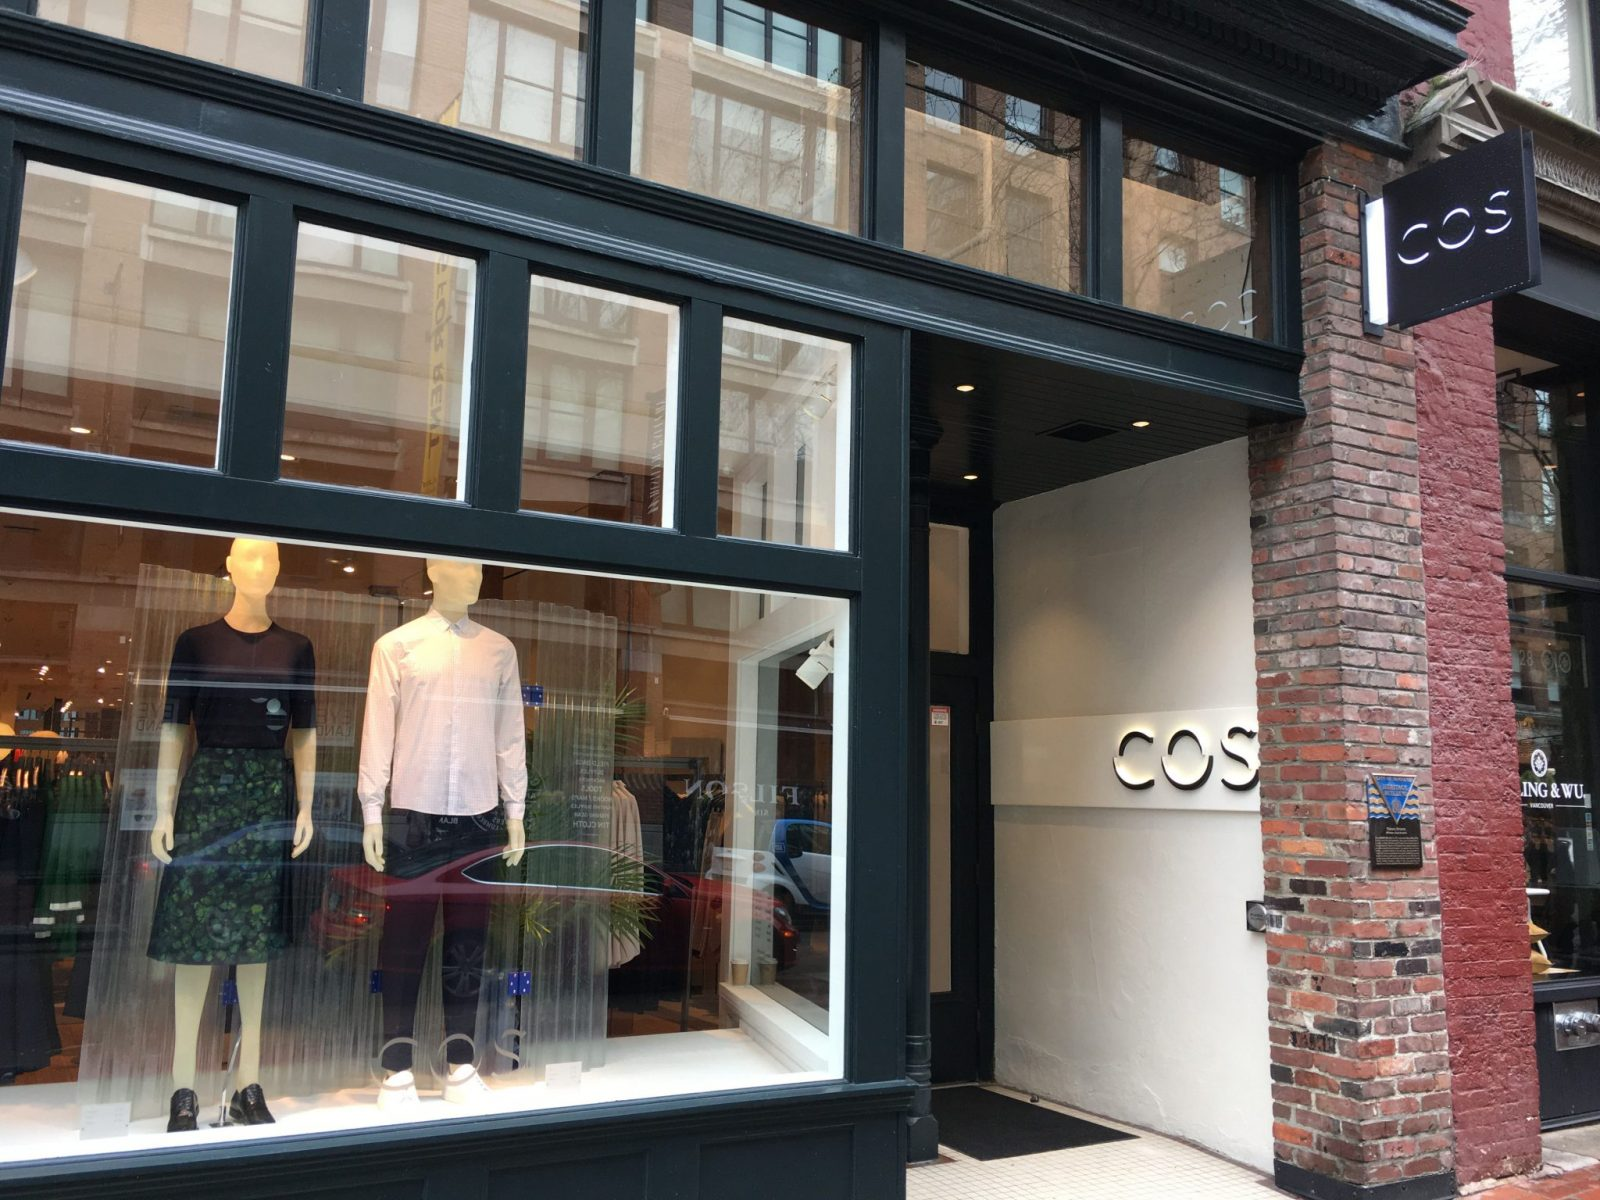 H&M's COS opens first Vancouver store in Gastown